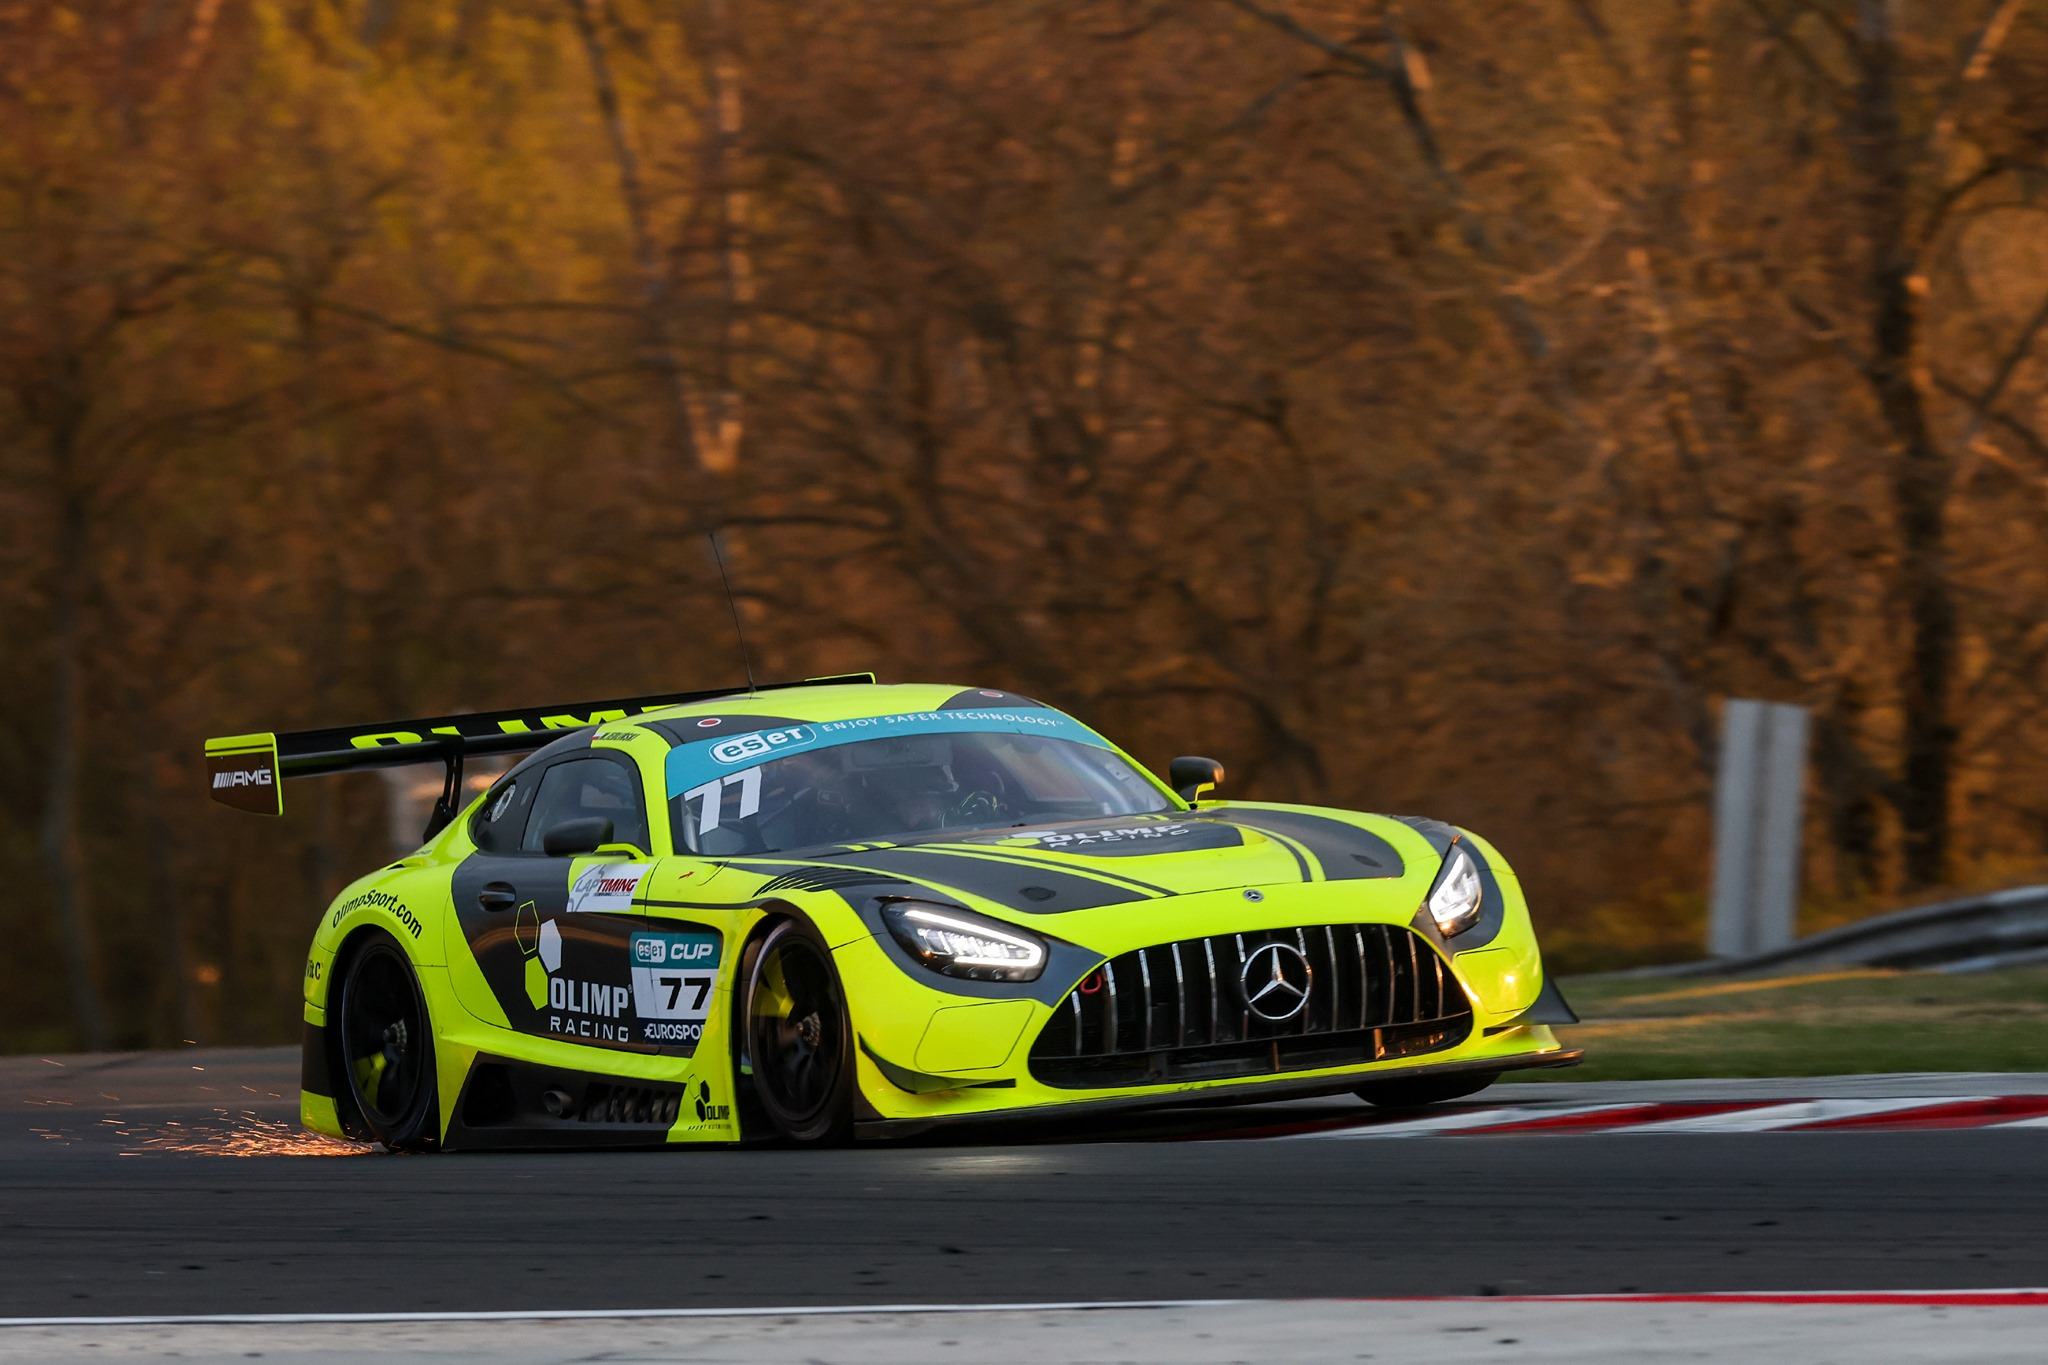 Jedlinski took his 2nd GT Sprint victory